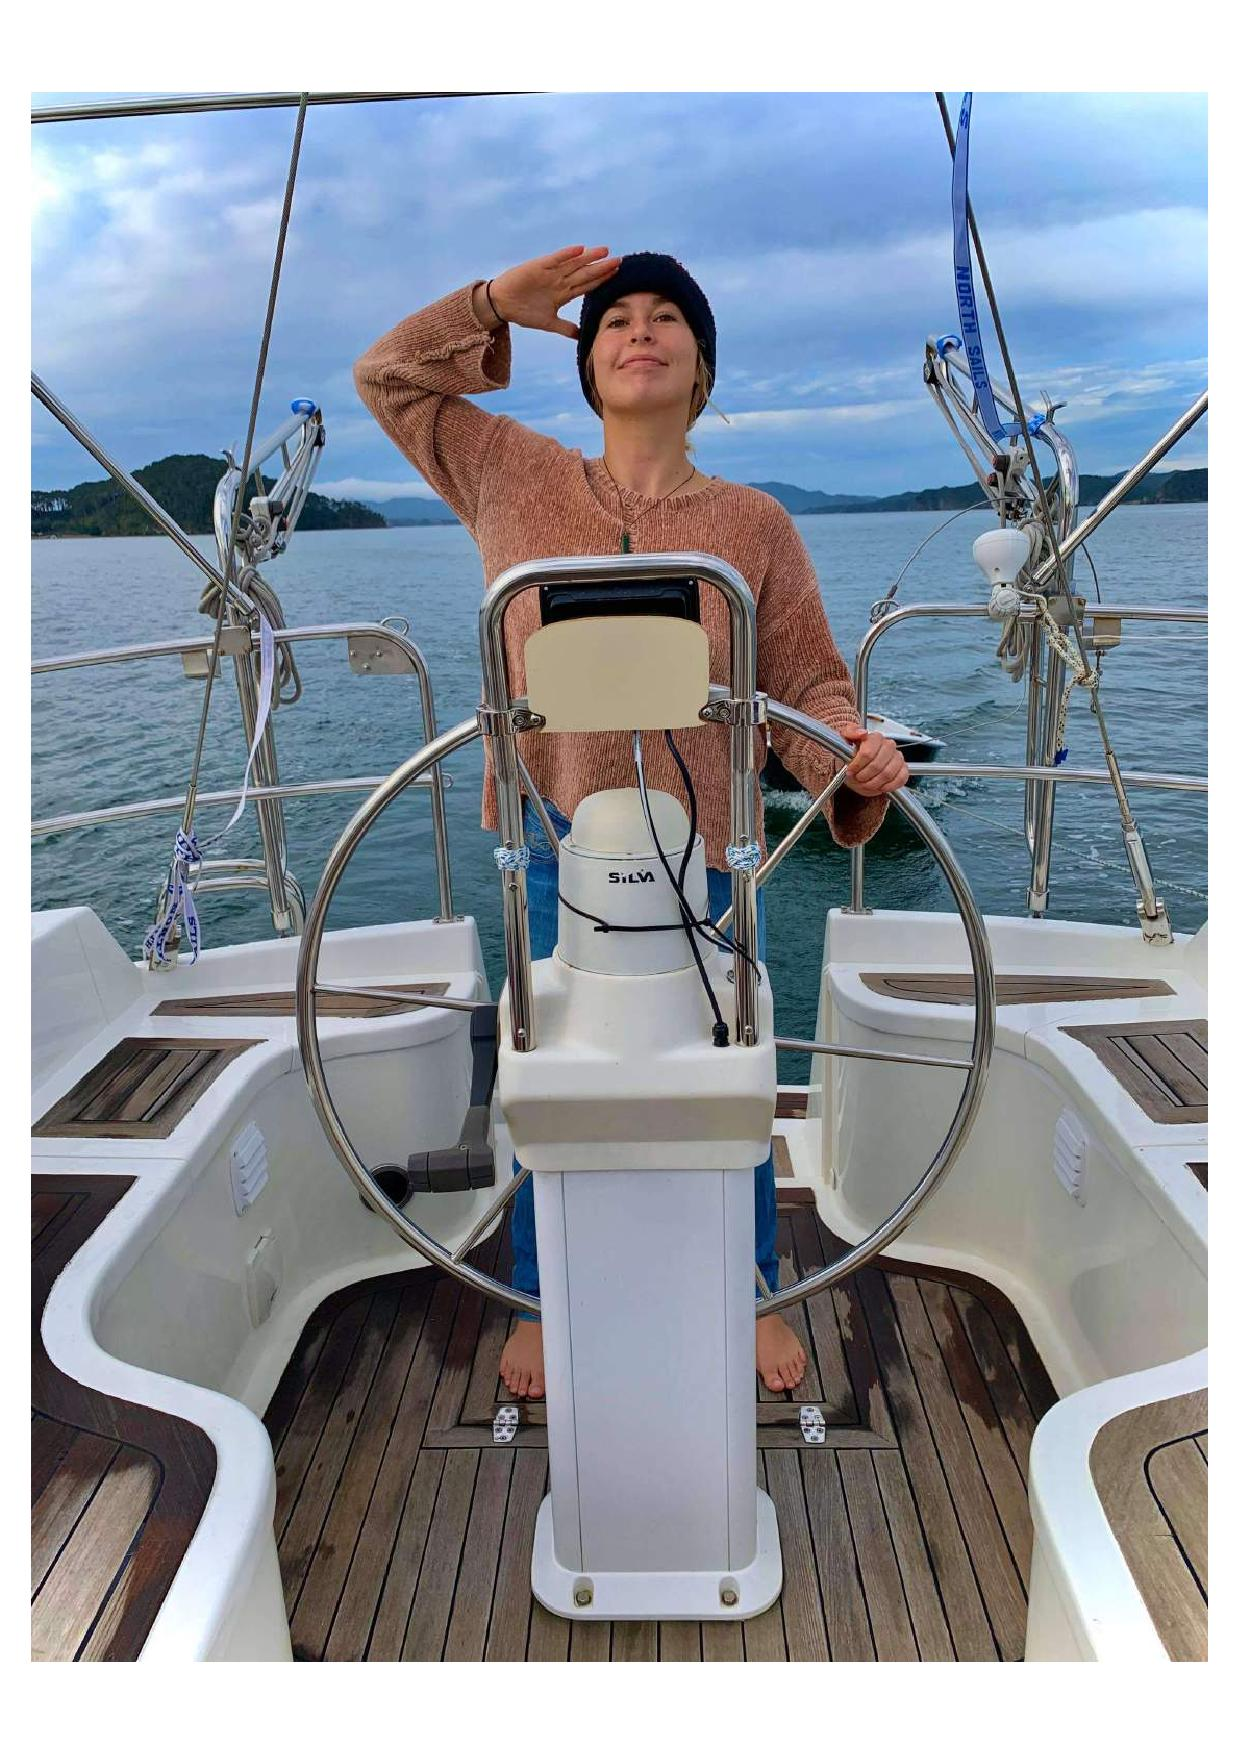 A girl stands at the helm of a sailboat looking at the horizon.